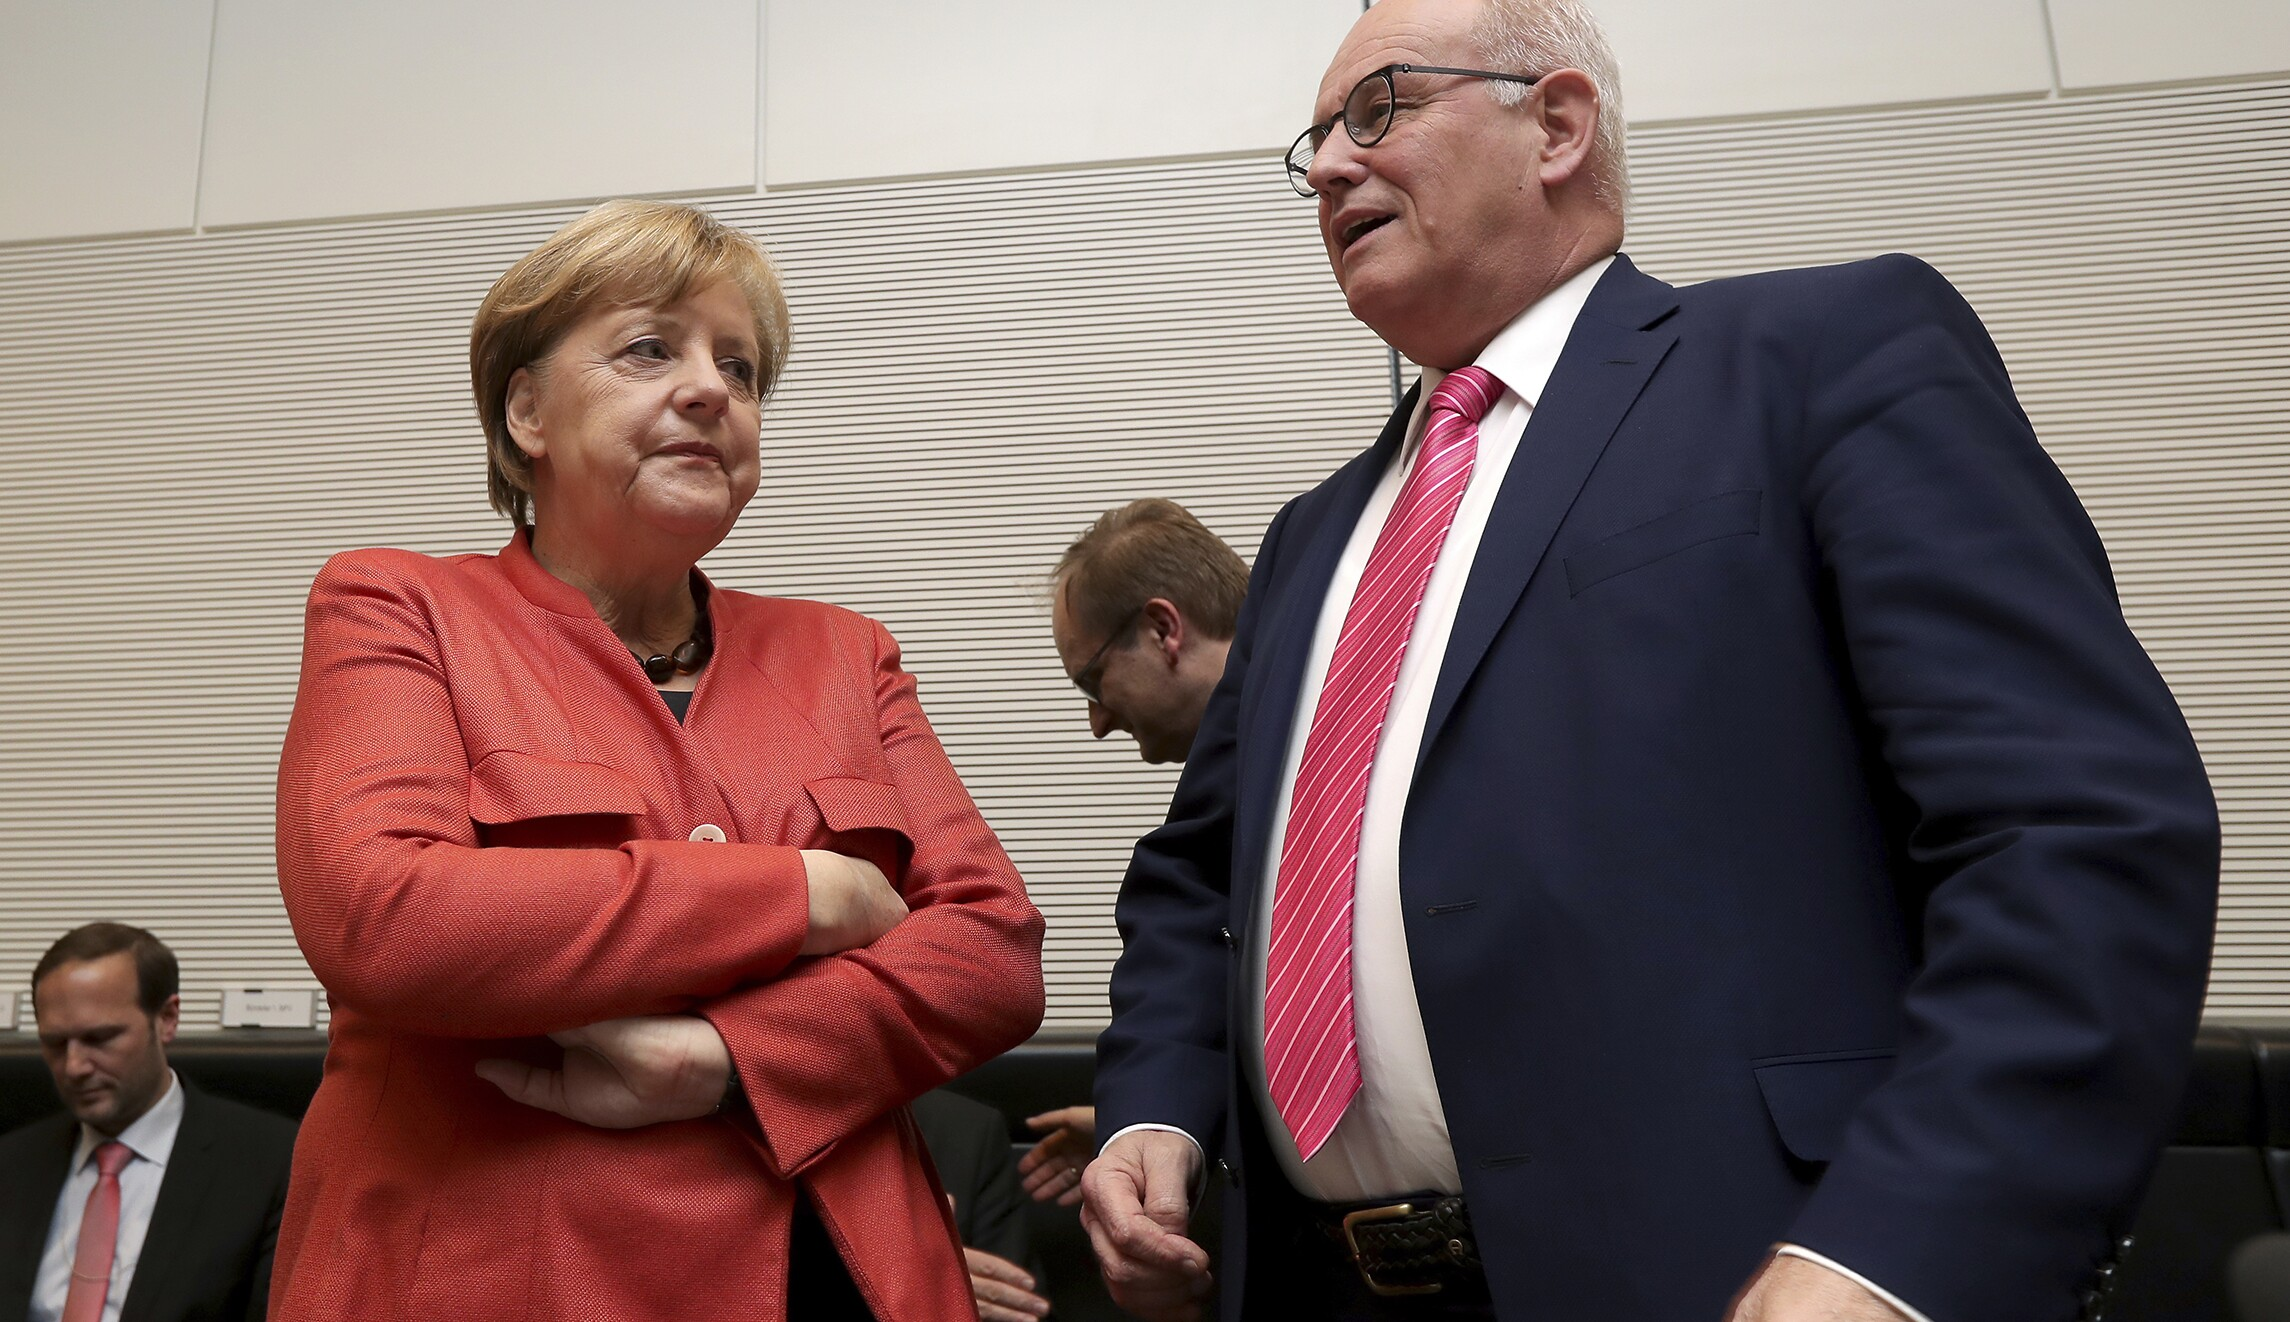 Is This The End For German Chancellor Angela Merkel